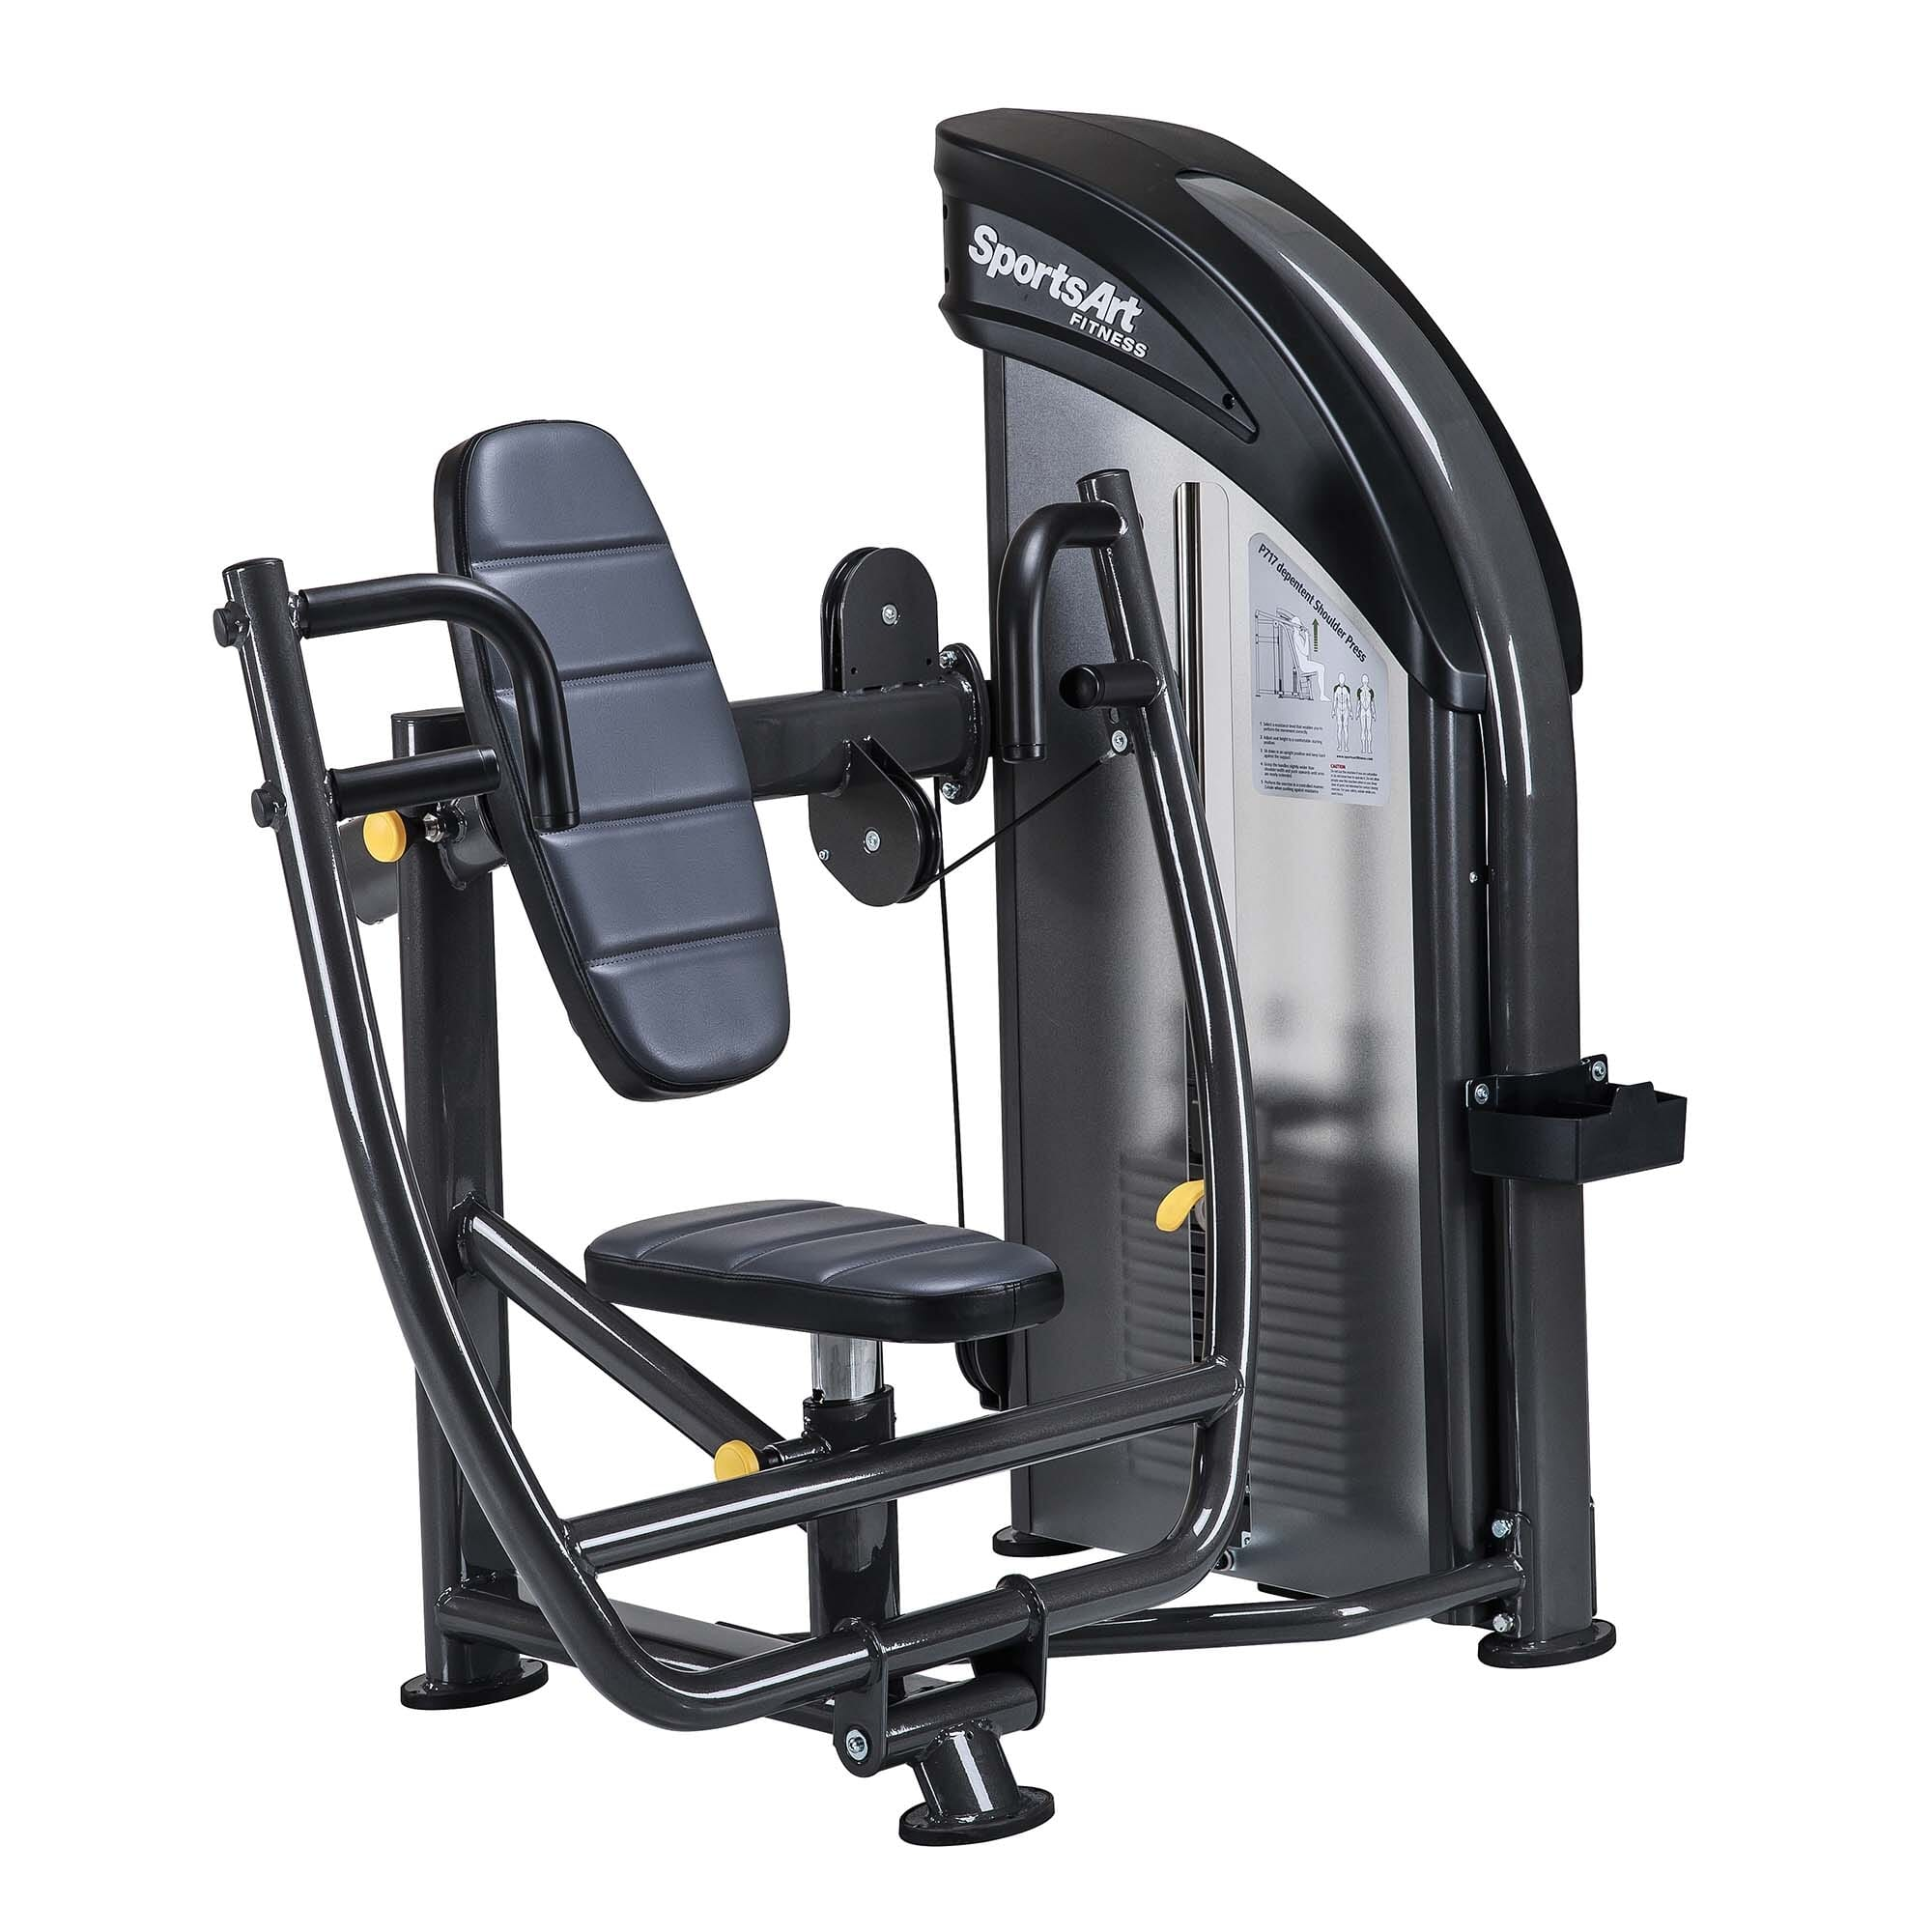 Unit Weight 376.2 lbs / 171 kg Dimensions 44.1 x 58.3 x 57.5 in / 112 x 148 x 146 cm Weight Stack 176 lb / 80 kg Max User Weight 500 lbs / 227.3 kg Starting Weight 14.3 lbs / 6.5 kg